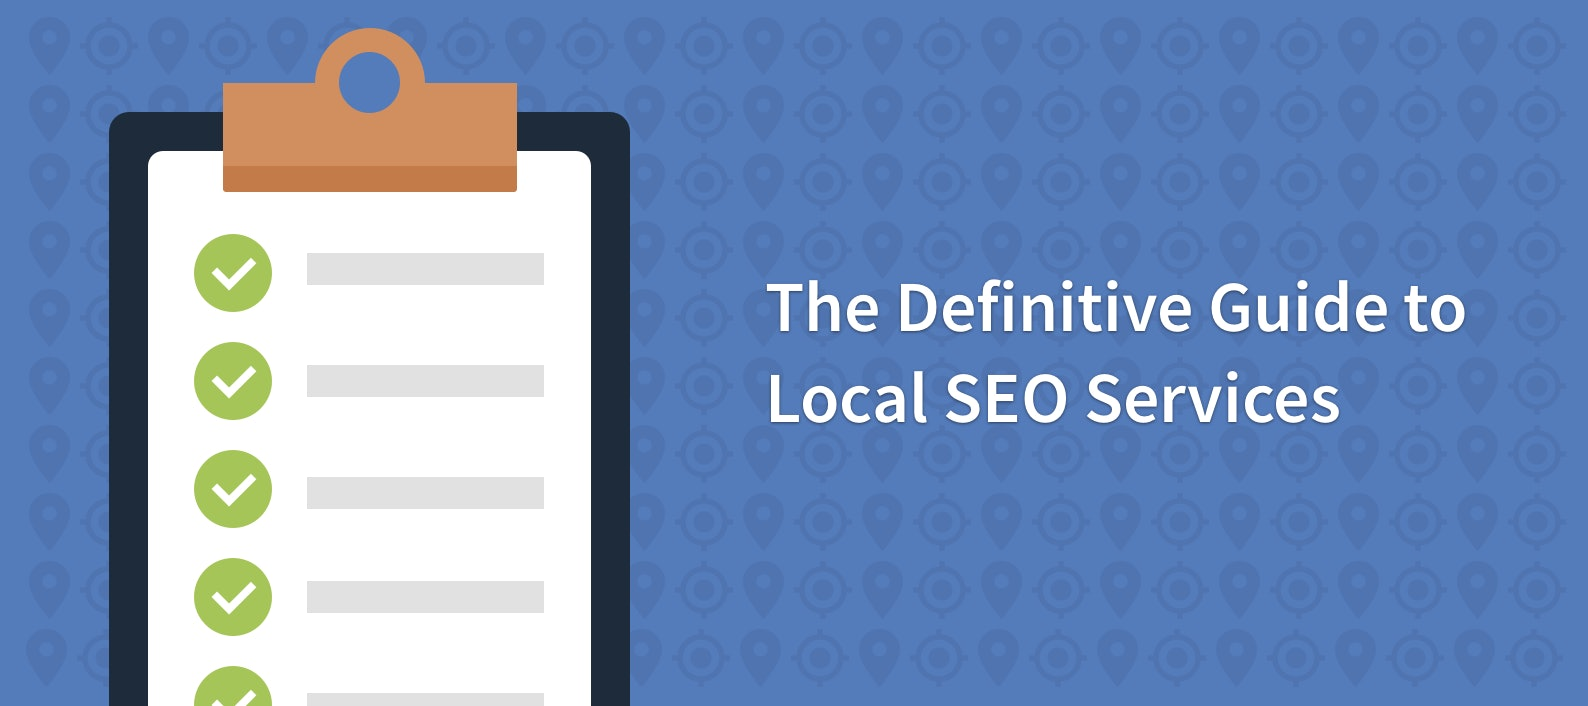 The Definitive Guide to Local SEO Services - BrightLocal